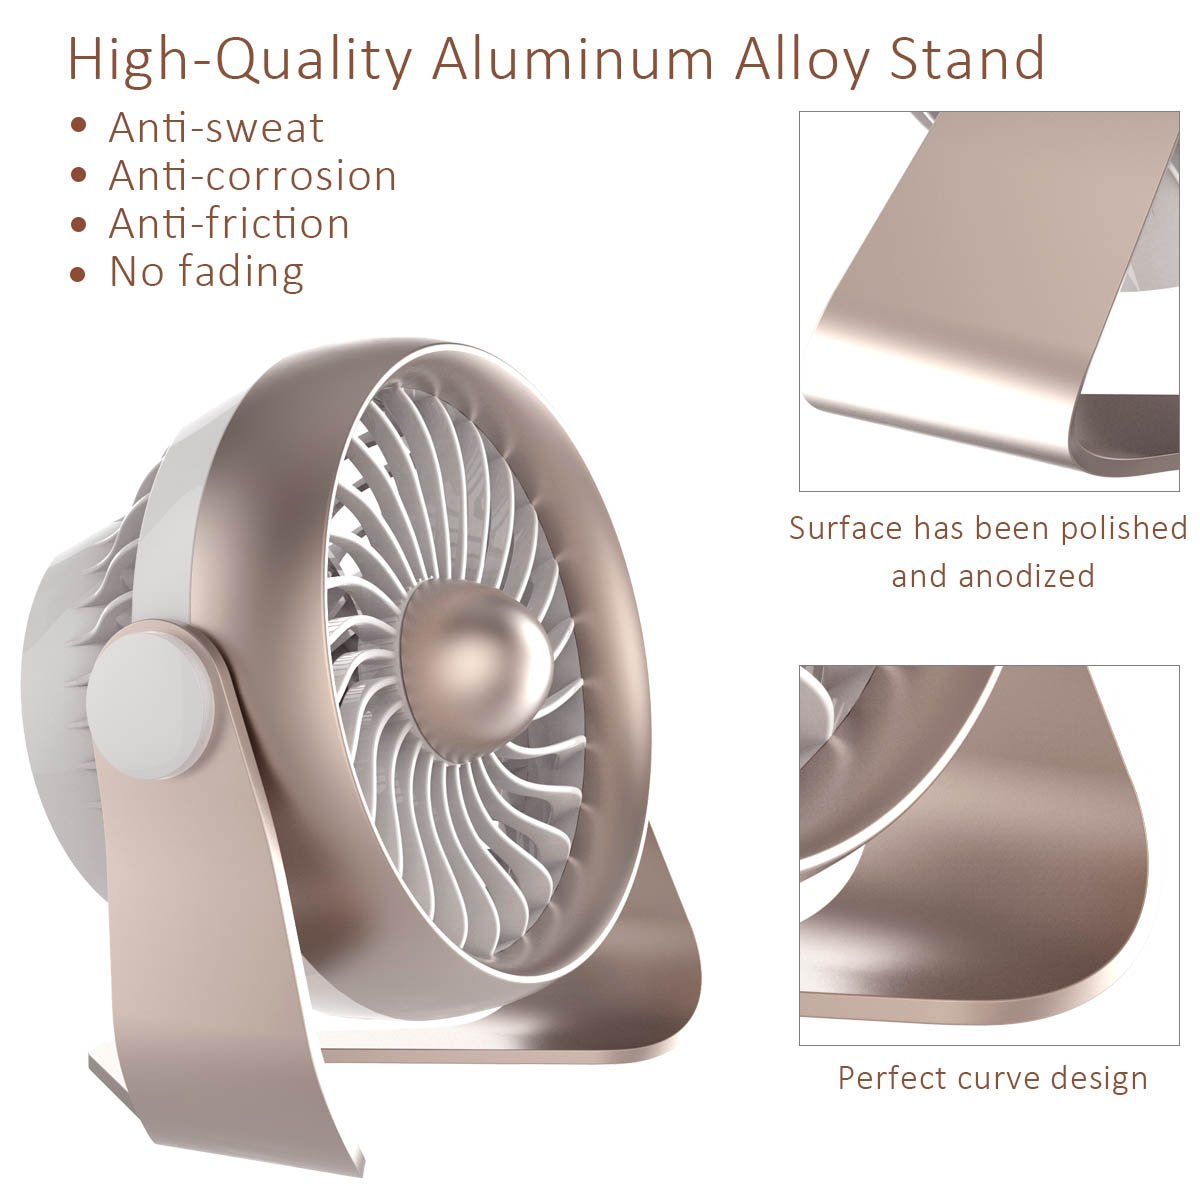 Portable Desk Fan, Portable USB & Rechargeable Battery Operated Mini Personal Small Desk Fan for Table, Desk, Office, Camping, Traveling, Dorm, Desktop, 4 Speeds, by AngLink by Anglink (Image #5)